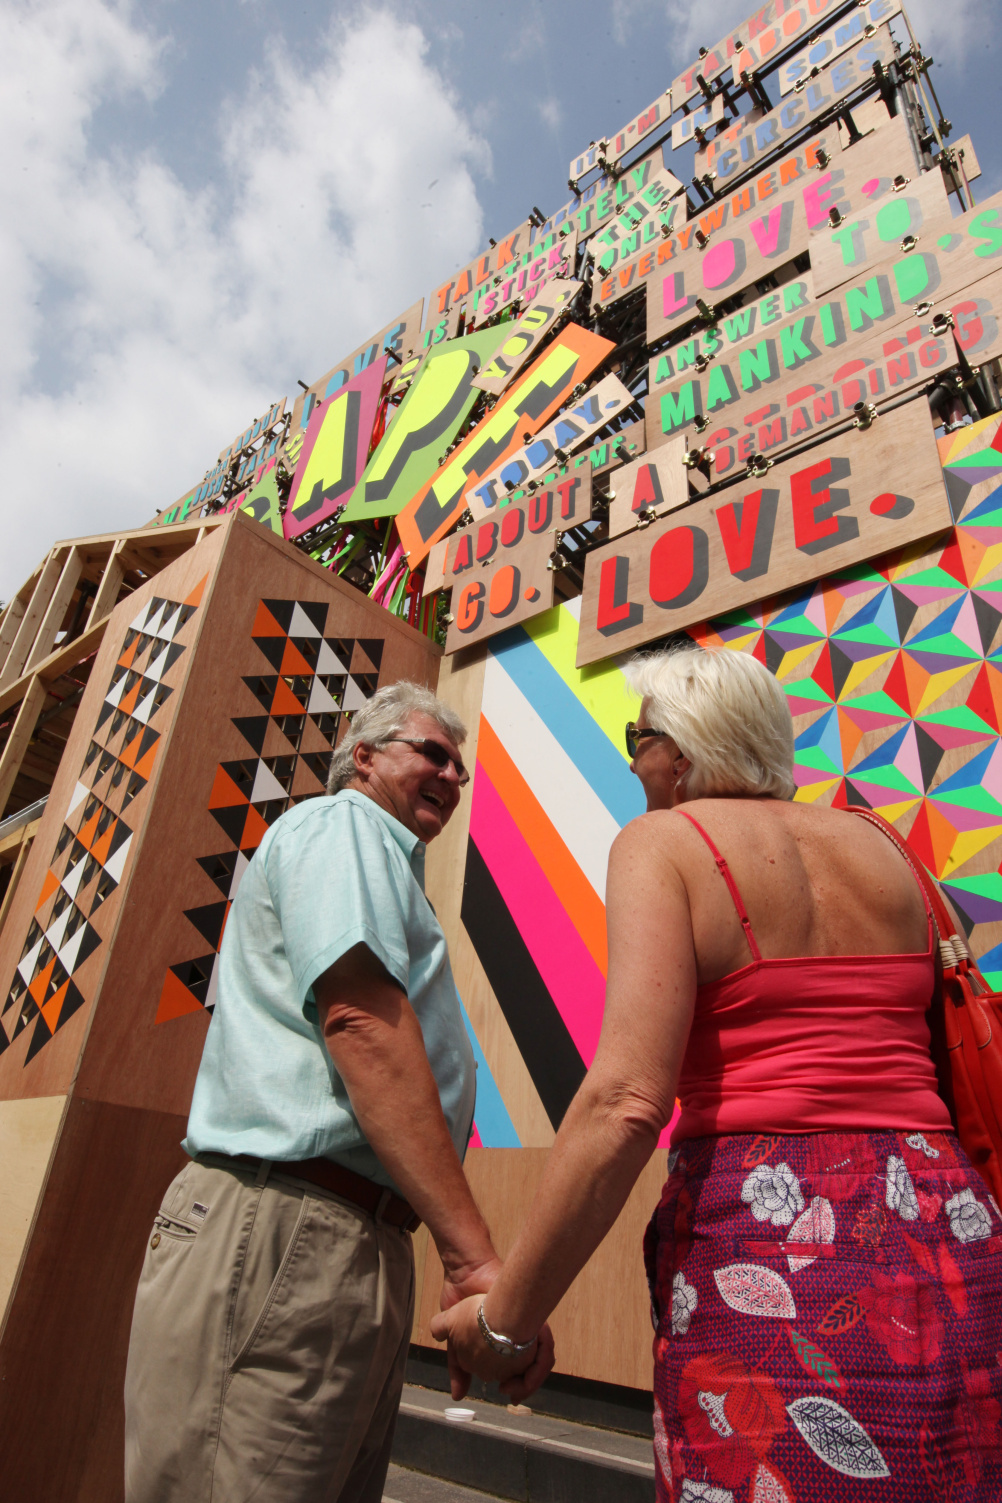 John and Jane Jones at Temple of Agape by Morag Myerscough & Luke Morgan